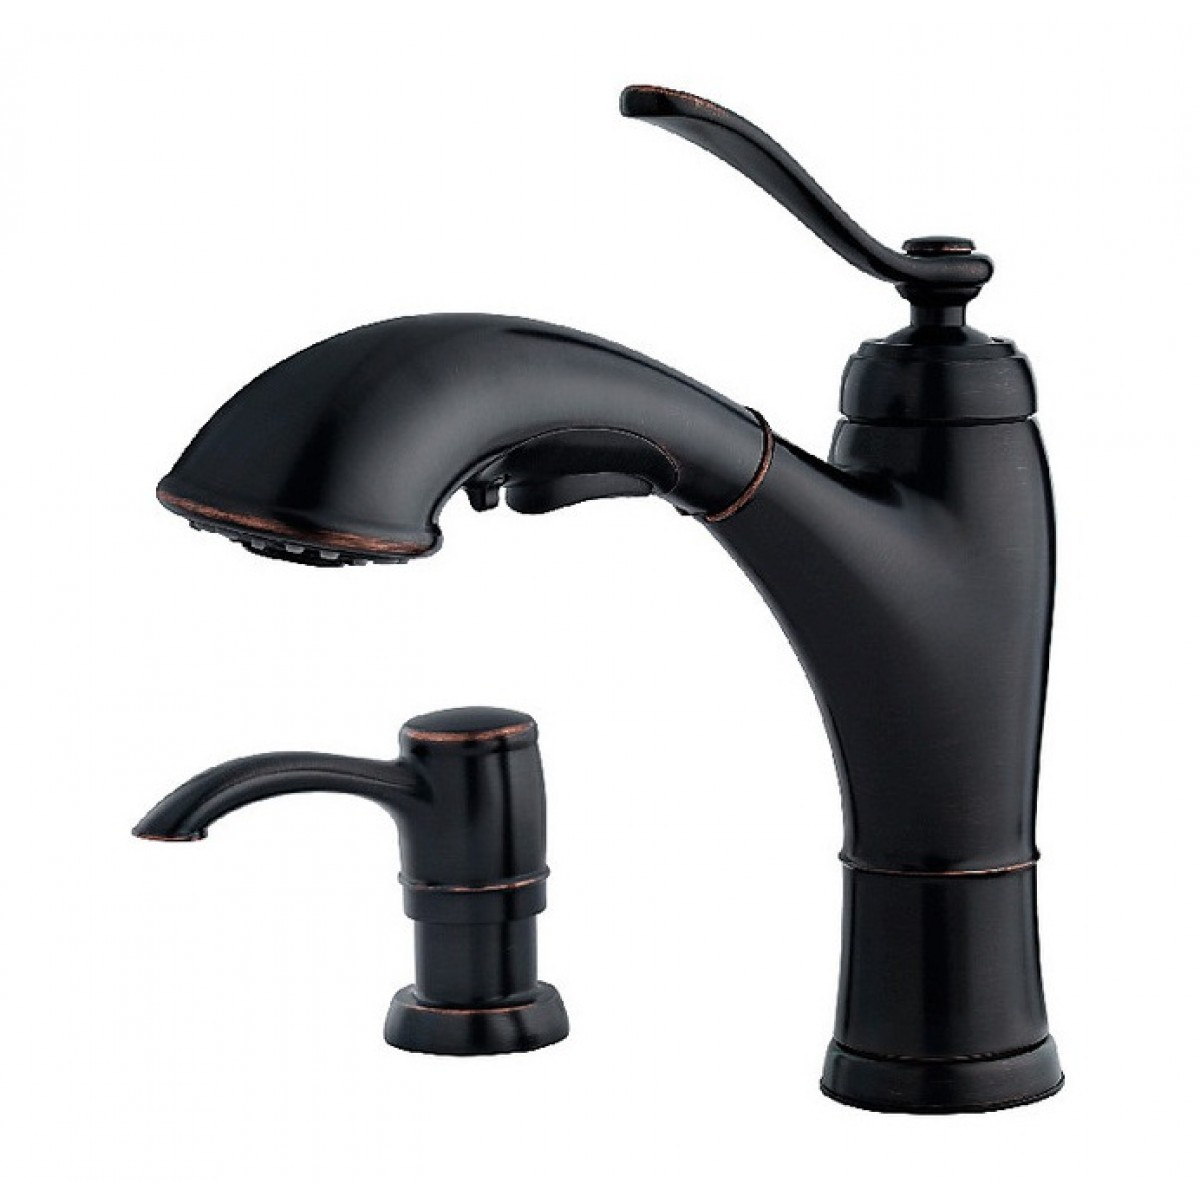 Pfister Glenfield Lead Free Single Handle Pull Out Kitchen Faucet ...